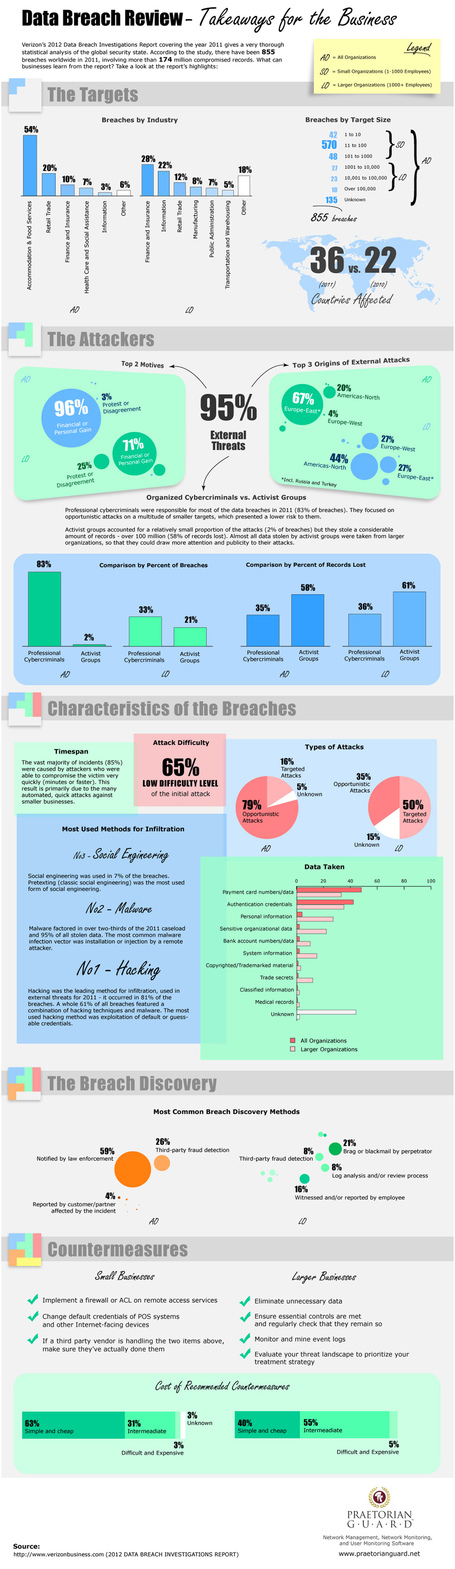 INFOGRAPHIC: : Data Breach Review | CloudTweaks | digitalassetman | Scoop.it